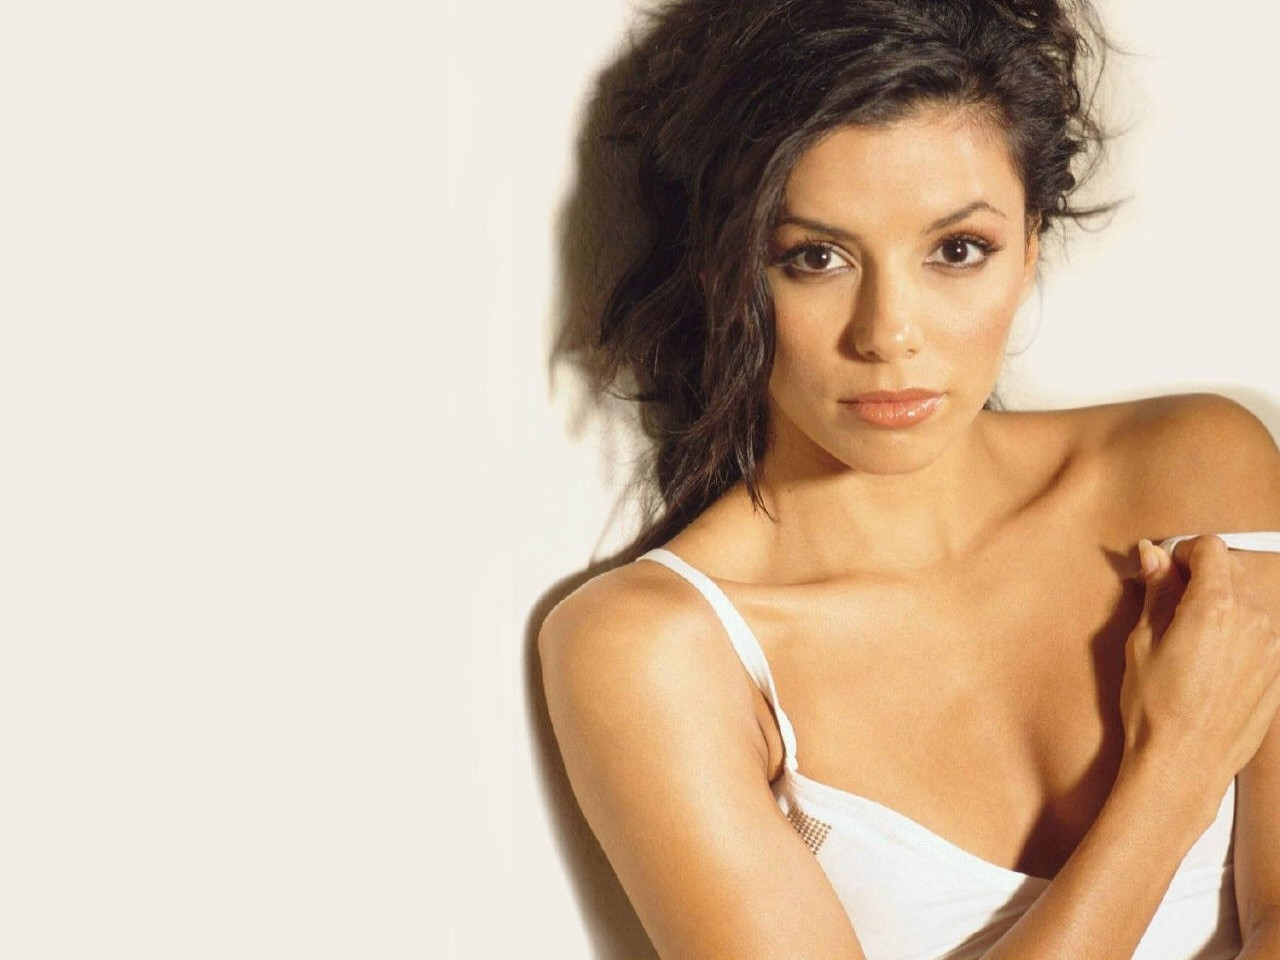 Wallpaper di Eva Longoria - l'attrice interpreta la simpatica Gabrielle Solis in Desperate Housewives